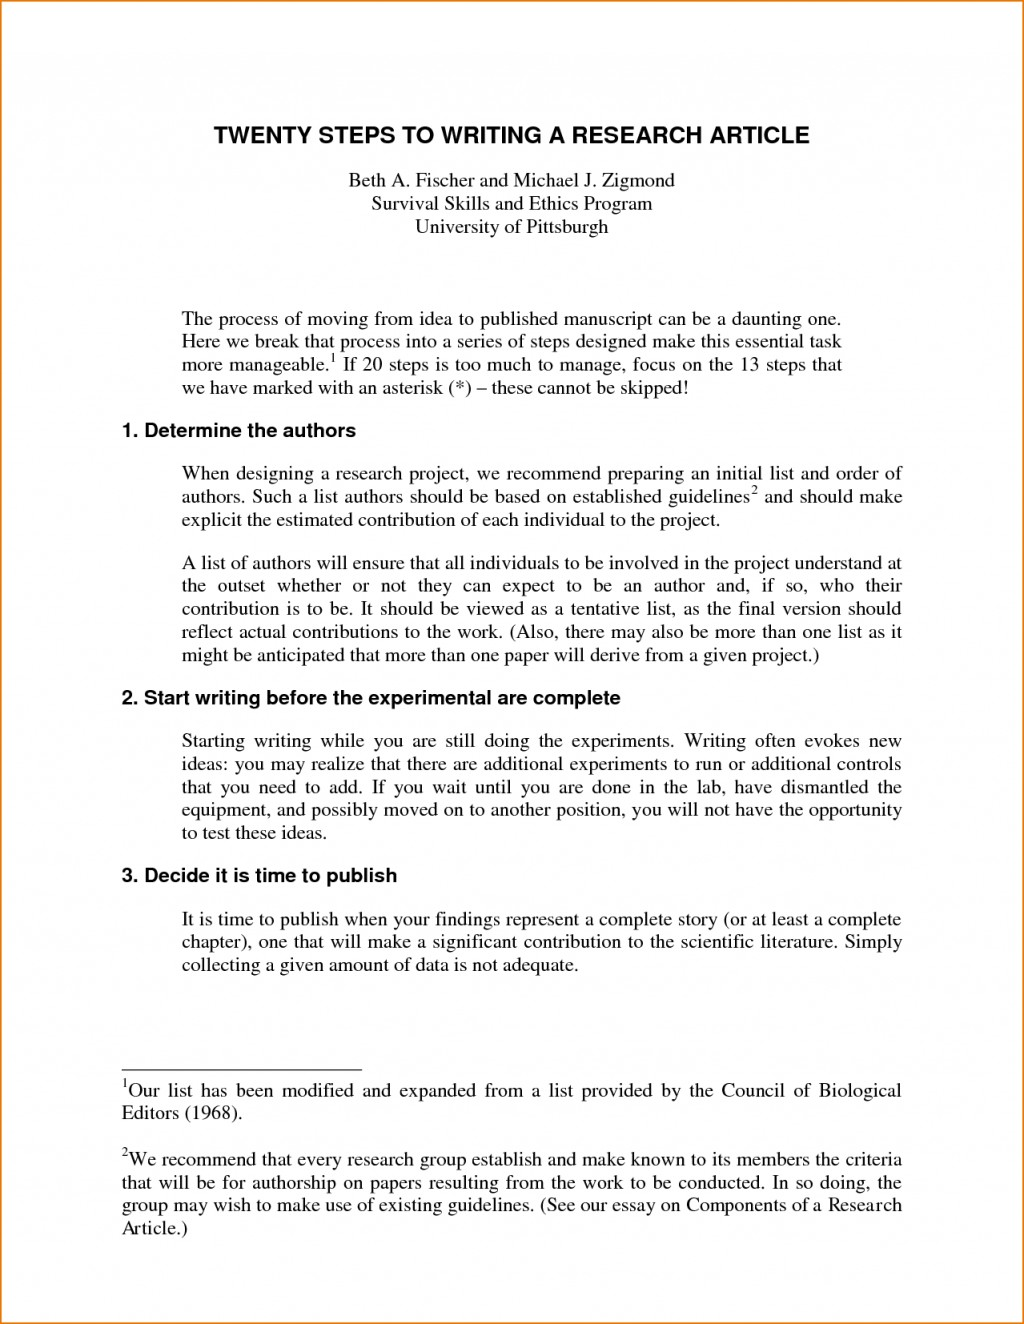 003 Components Of Research Paper Frightening Writing Parts Large